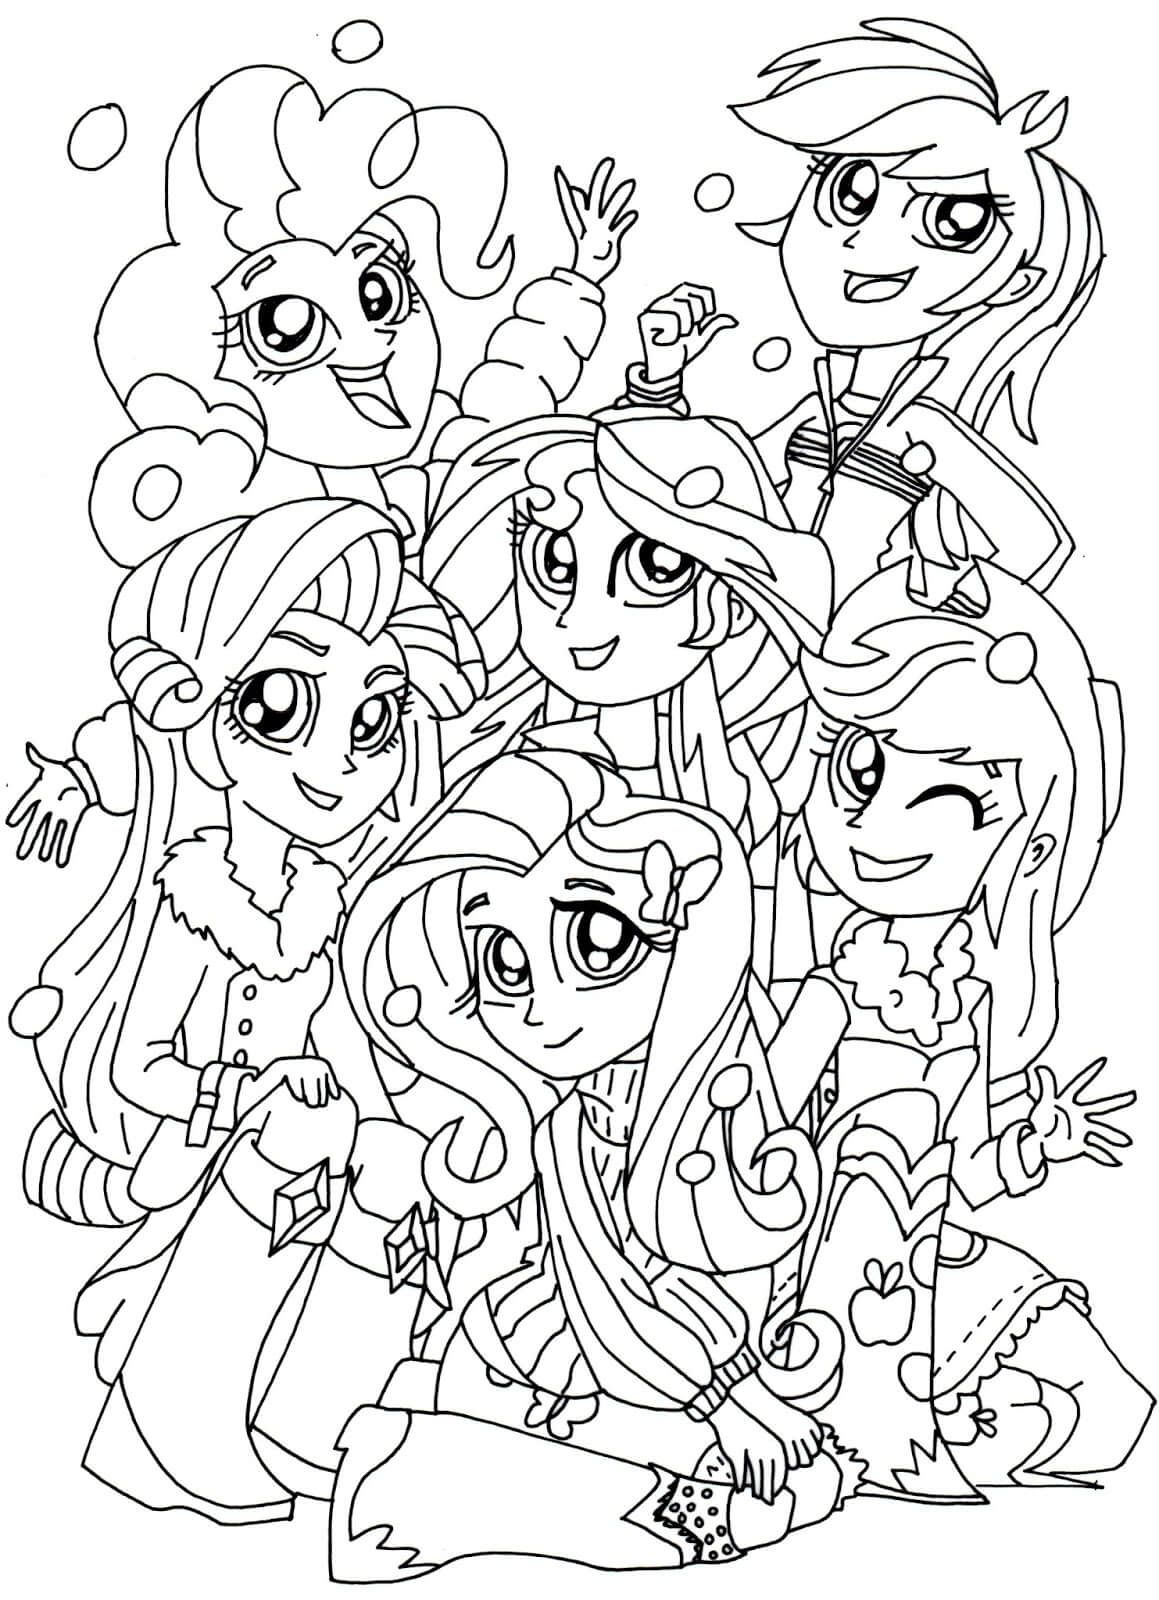 Ausmalbilder My Little Pony Der Film : My Little Pony Equestria Girls Coloring Pages Equestria Girls